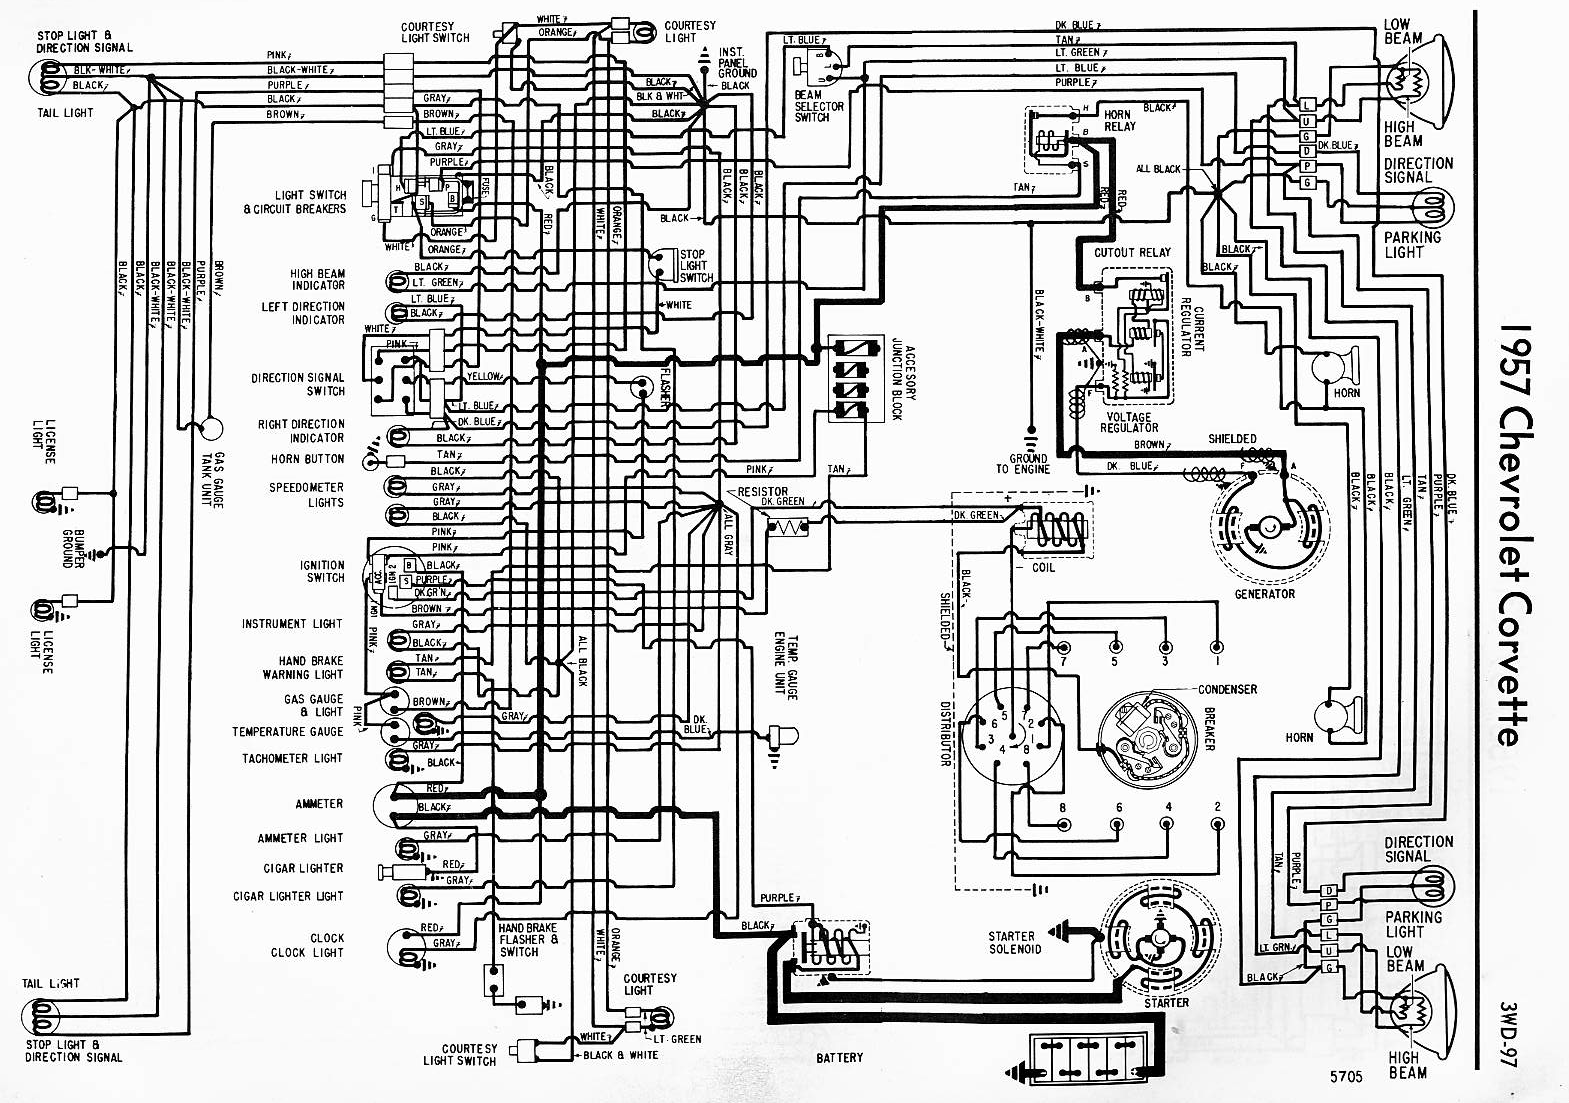 1970 Corvette Wiring Diagram For Alternator Detailed Schematics 68 Dash Free Download 1982 Pontiac Chevy Schematic